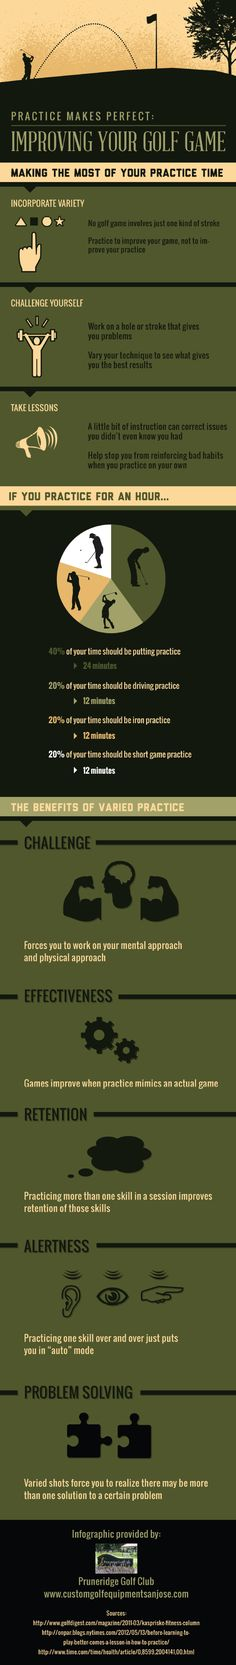 An hour-long golf practice should be made up of 40% putting practice, 20% driving practice, 20% iron practice, and 20% short game practice for the best results. To learn more, check out this infographic from a golf club in Santa Clara.